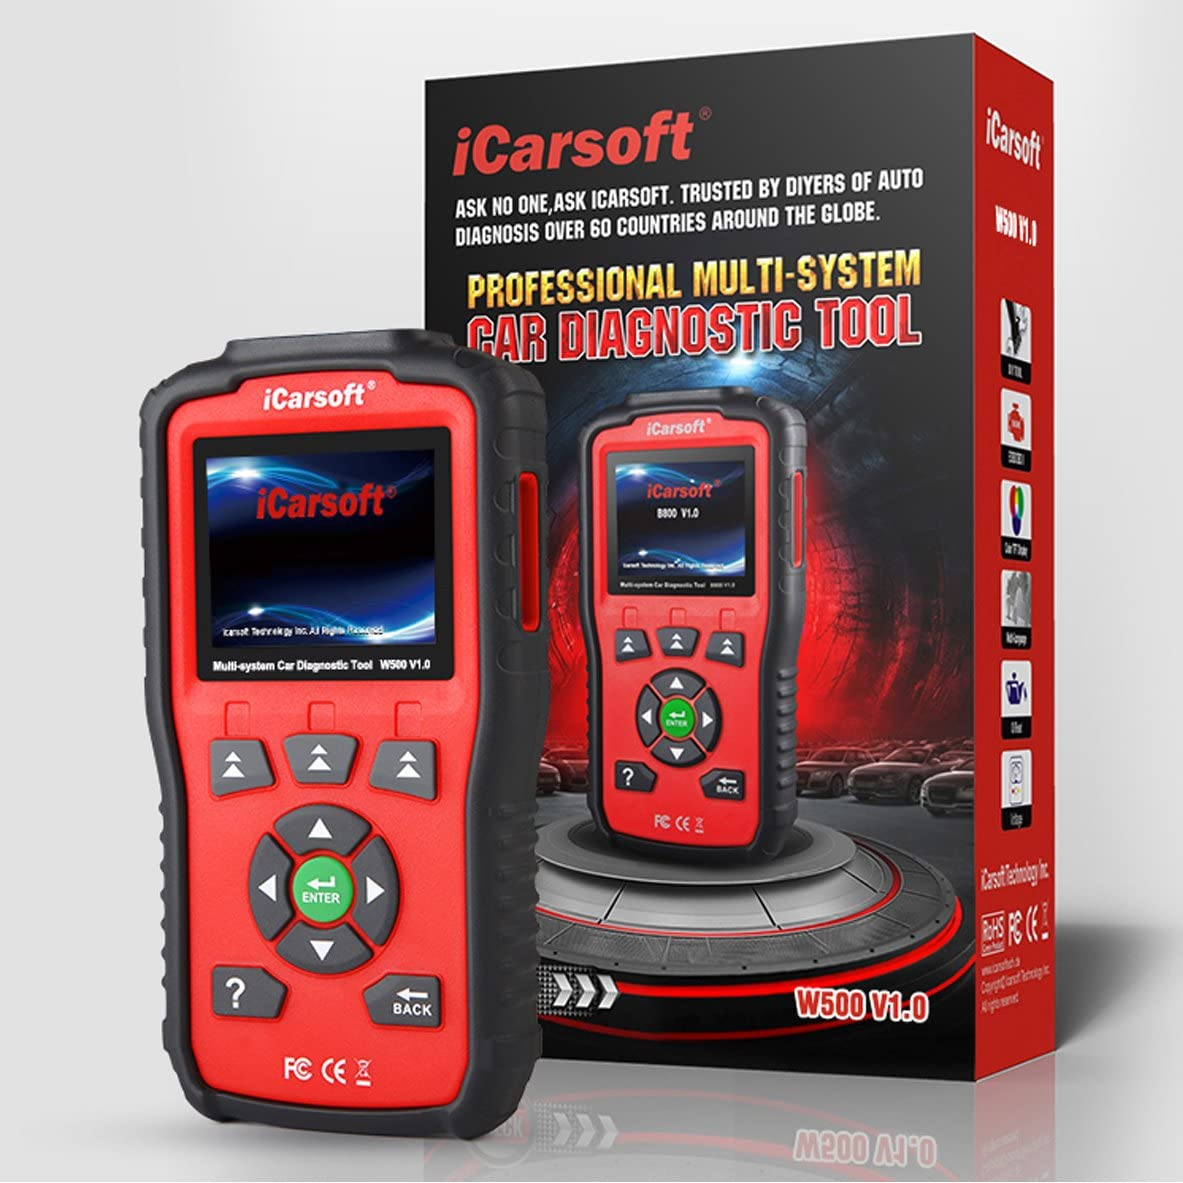 security iCarsoft Auto Diagnostic Scanner W500 V1.0 VW Audi Direct store Seat for Skod